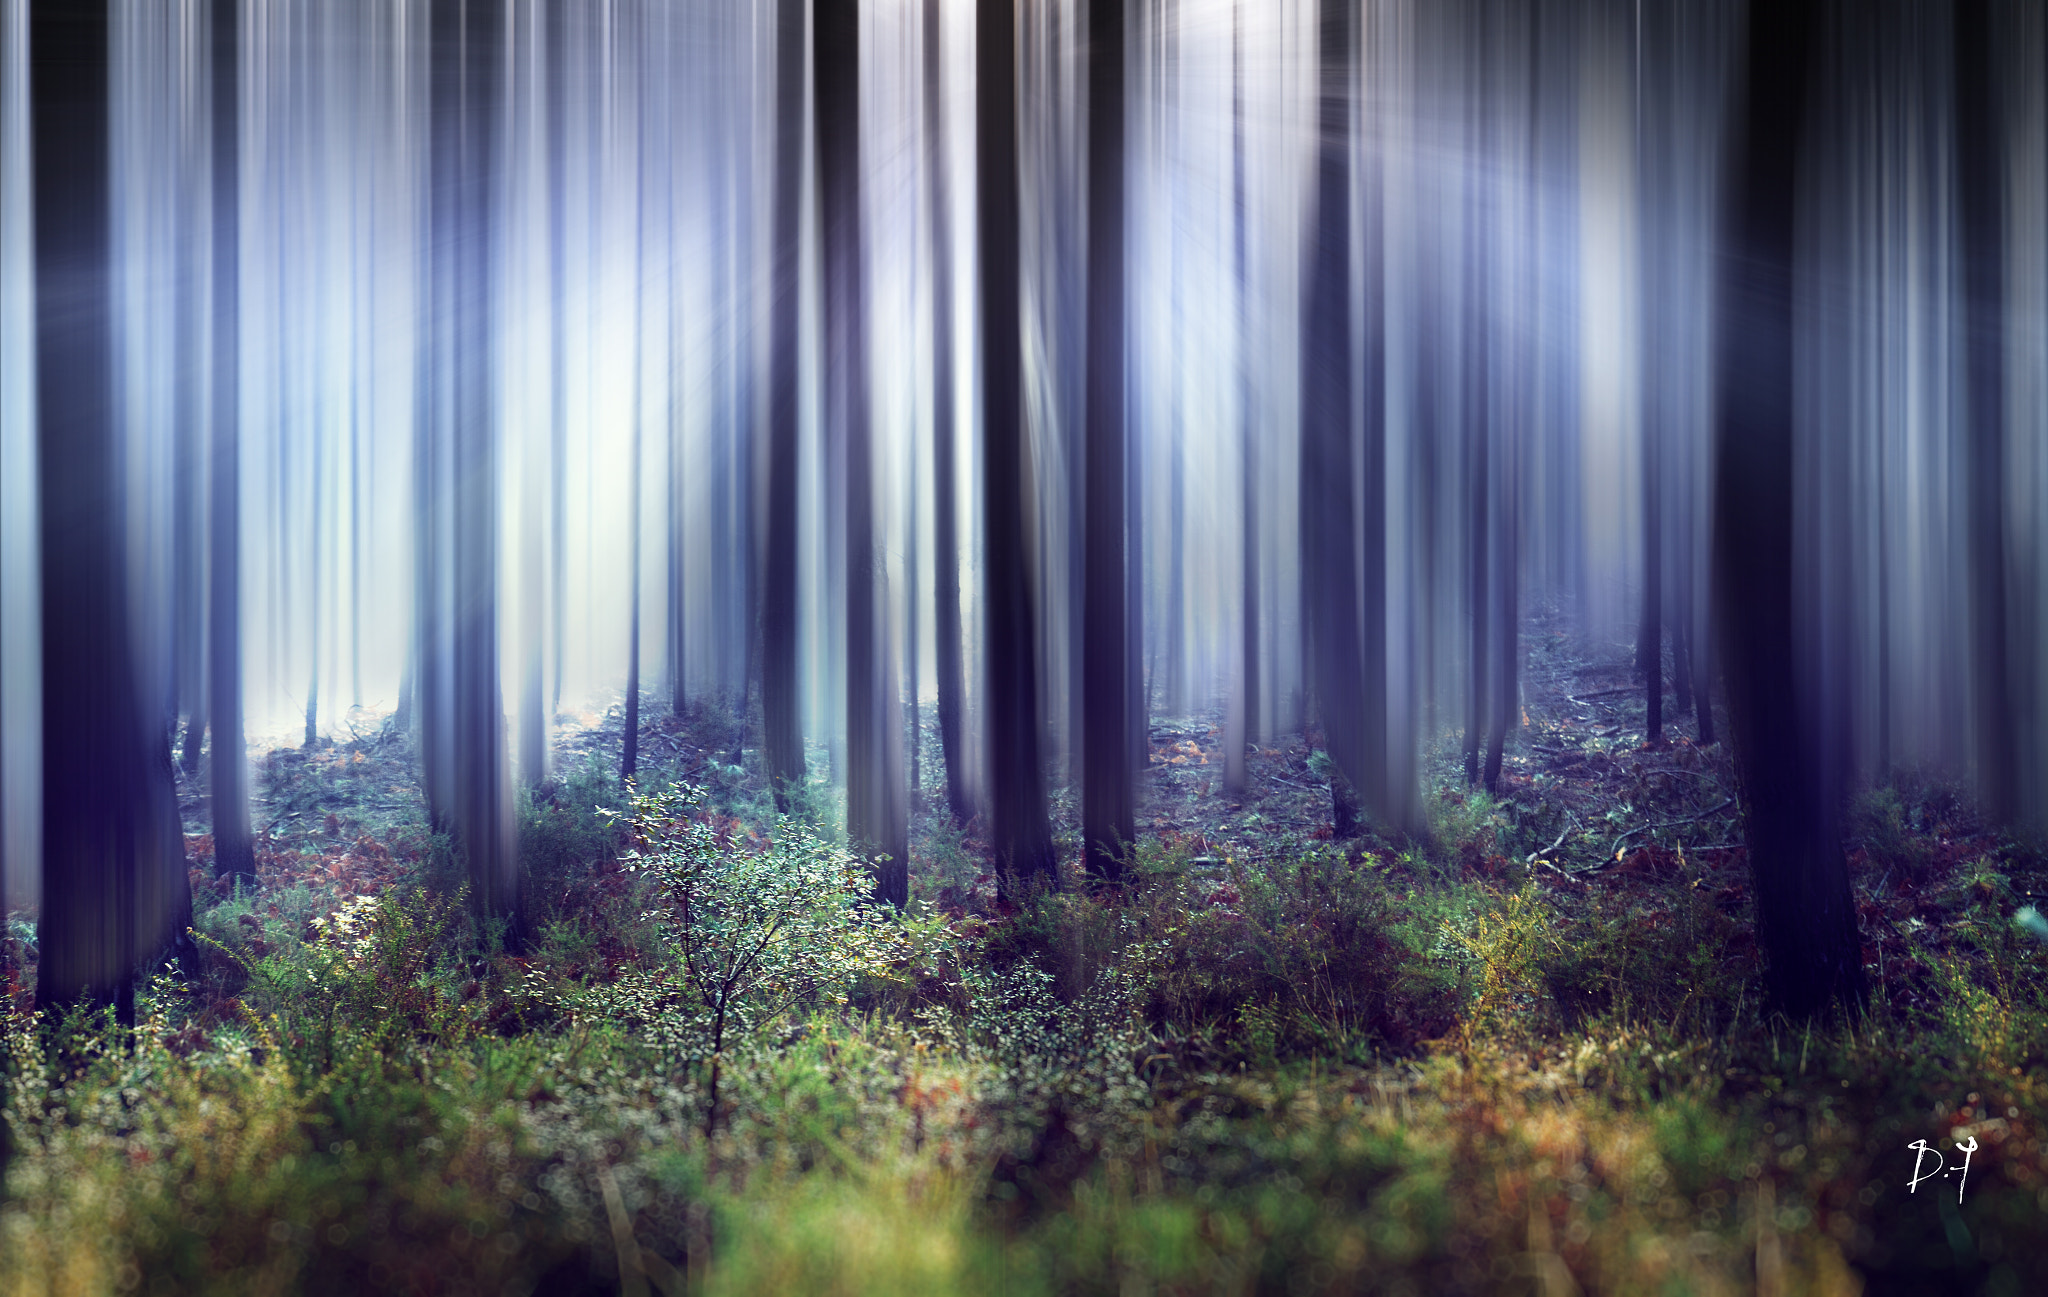 Photograph Light forest by dufau julien on 500px